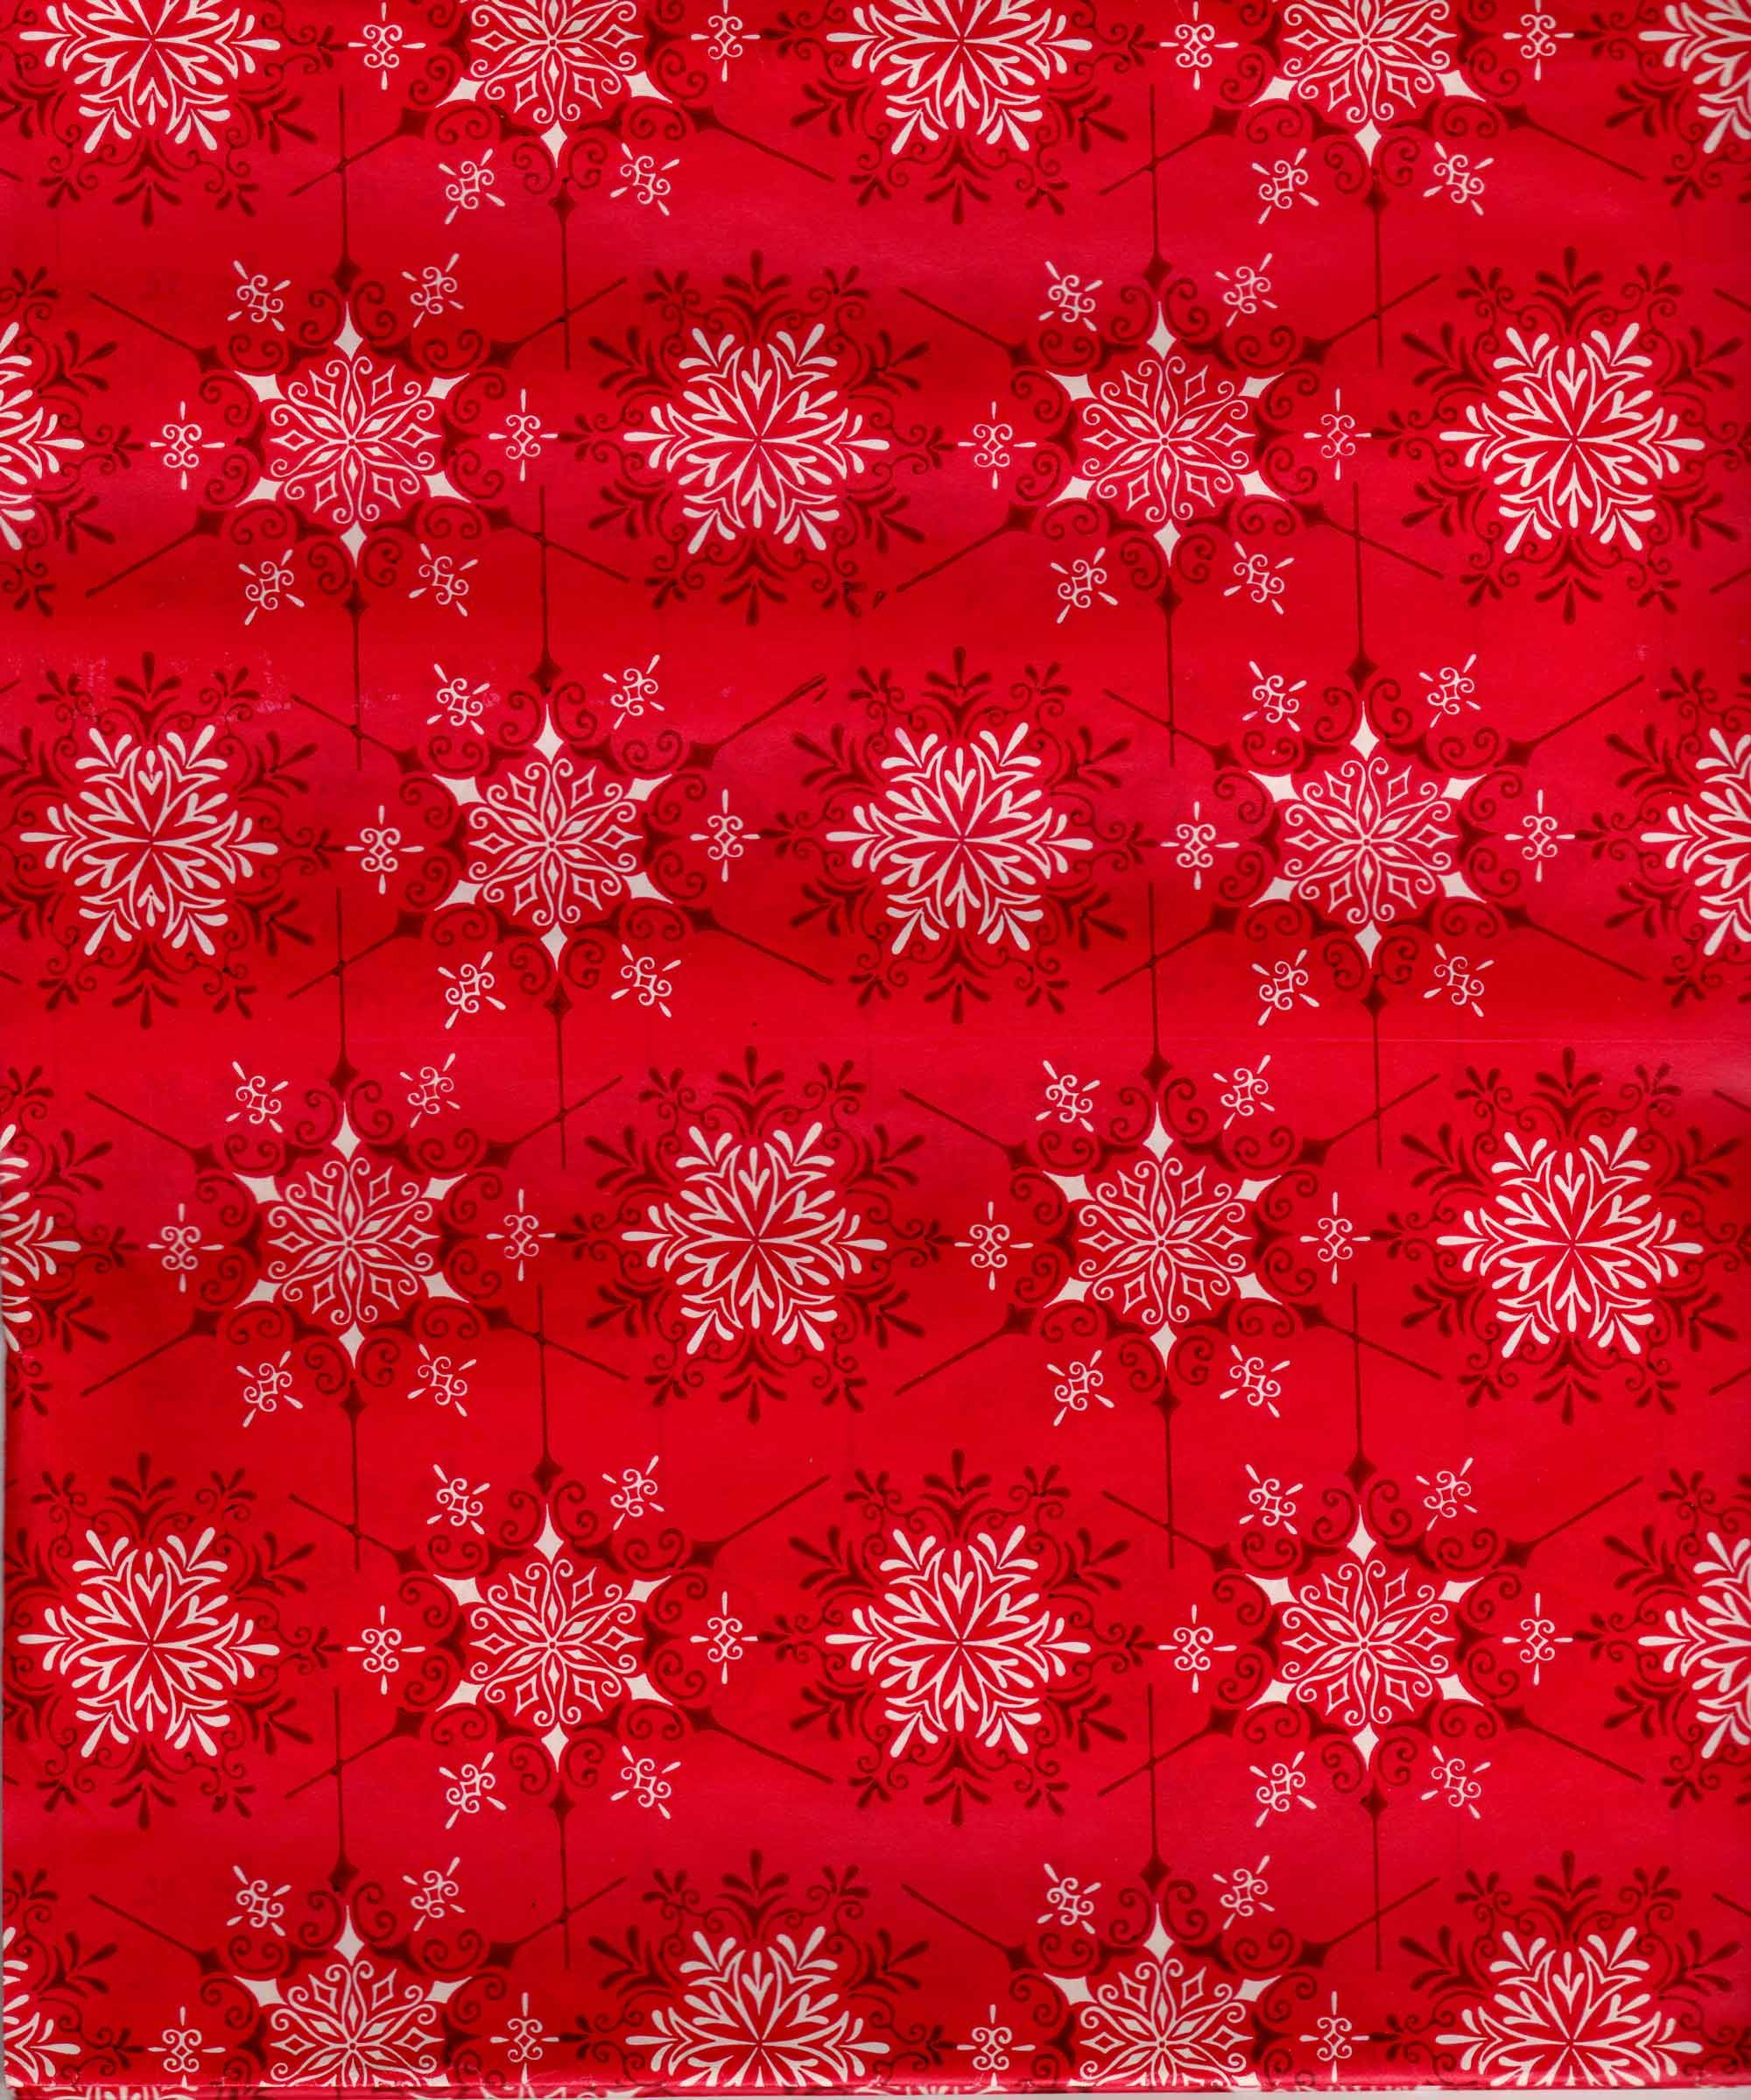 Pin By Angela Palmer On Christmas Vintage Wrapping Paper Backgrounds Vintage Christmas Wrapping Paper Christmas Prints Christmas Wallpaper